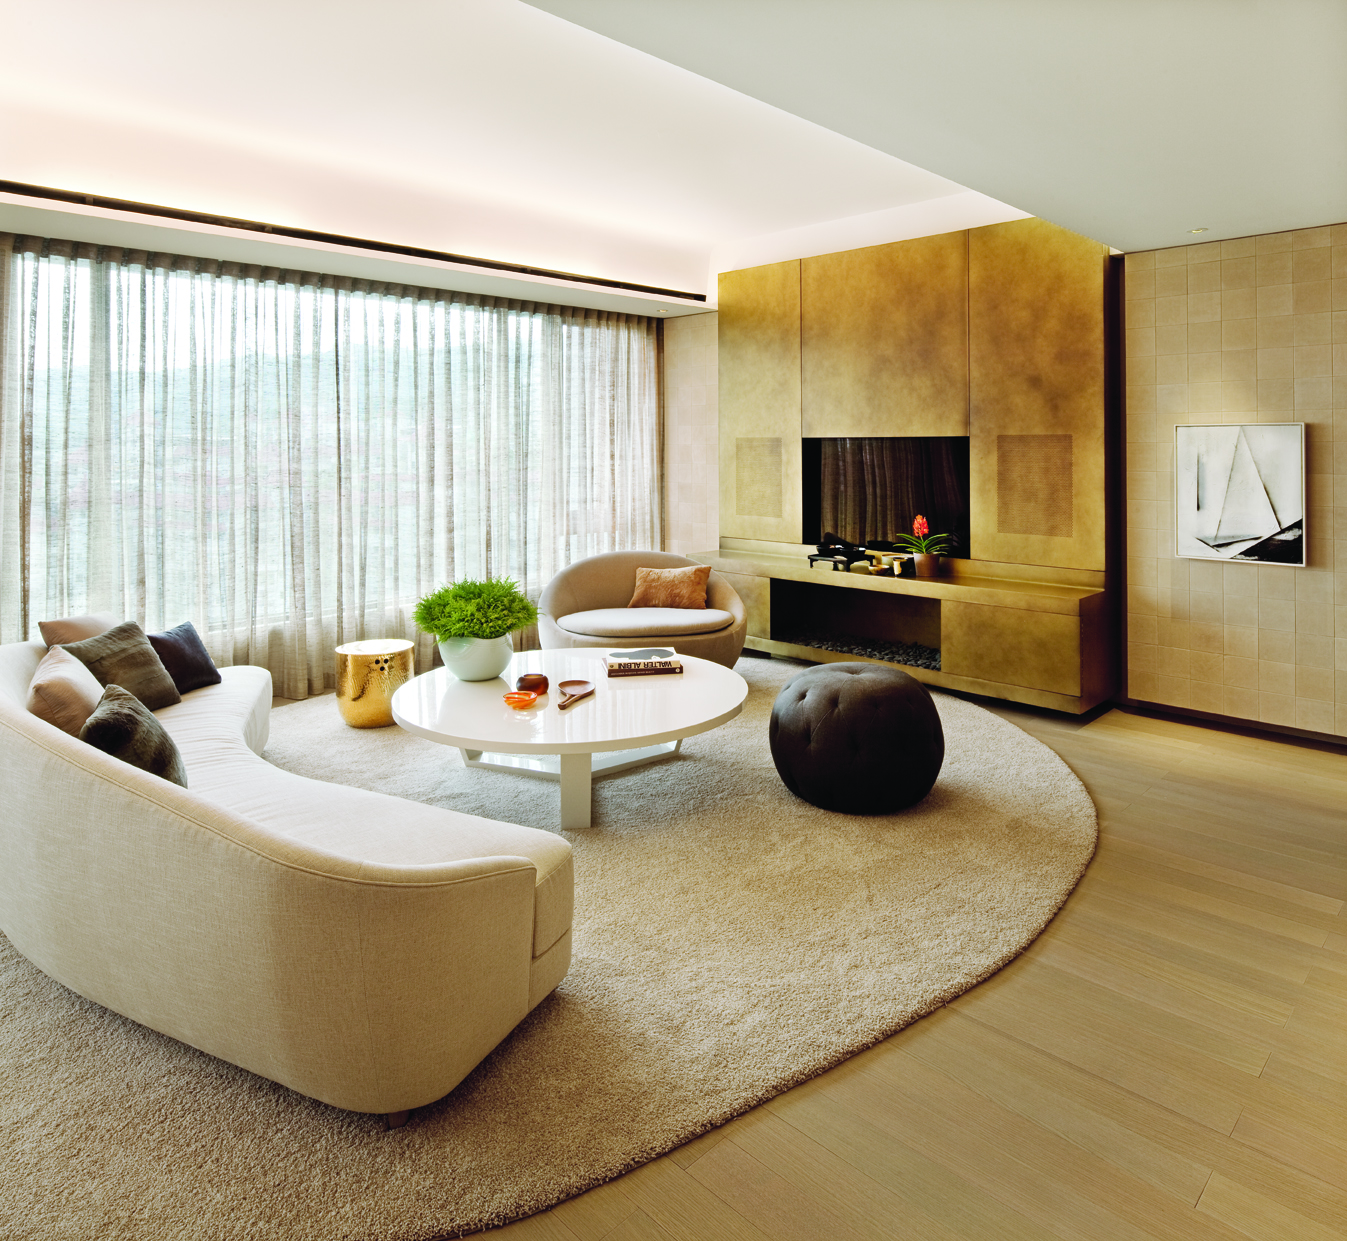 The Lumiere Residences in Taipei feature nine apartments and spaces that range from a library and banquet room to a penthouse